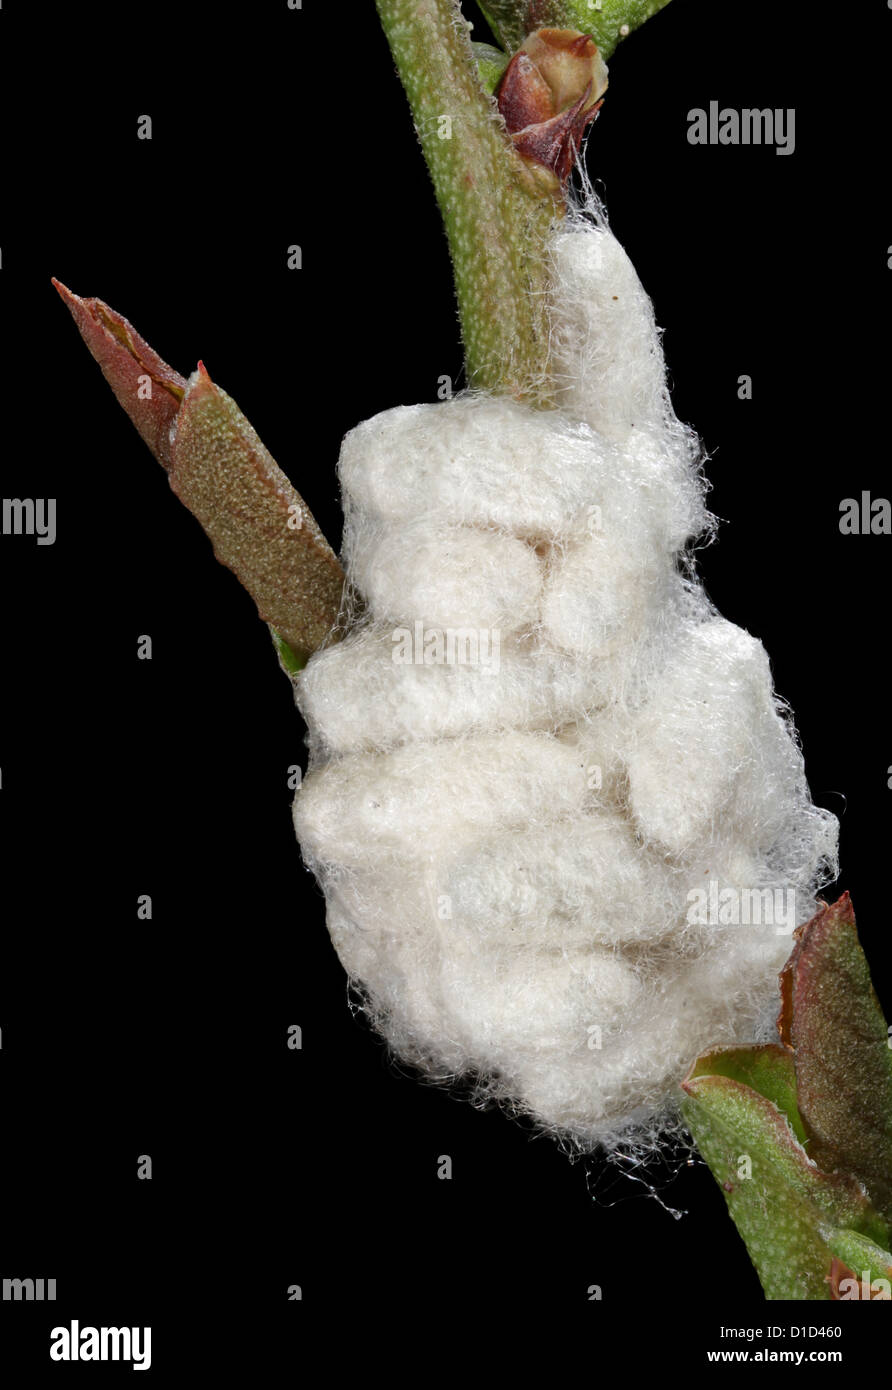 A cluster of cocoons of pupating wasps, Cotesia sp. - Stock Image